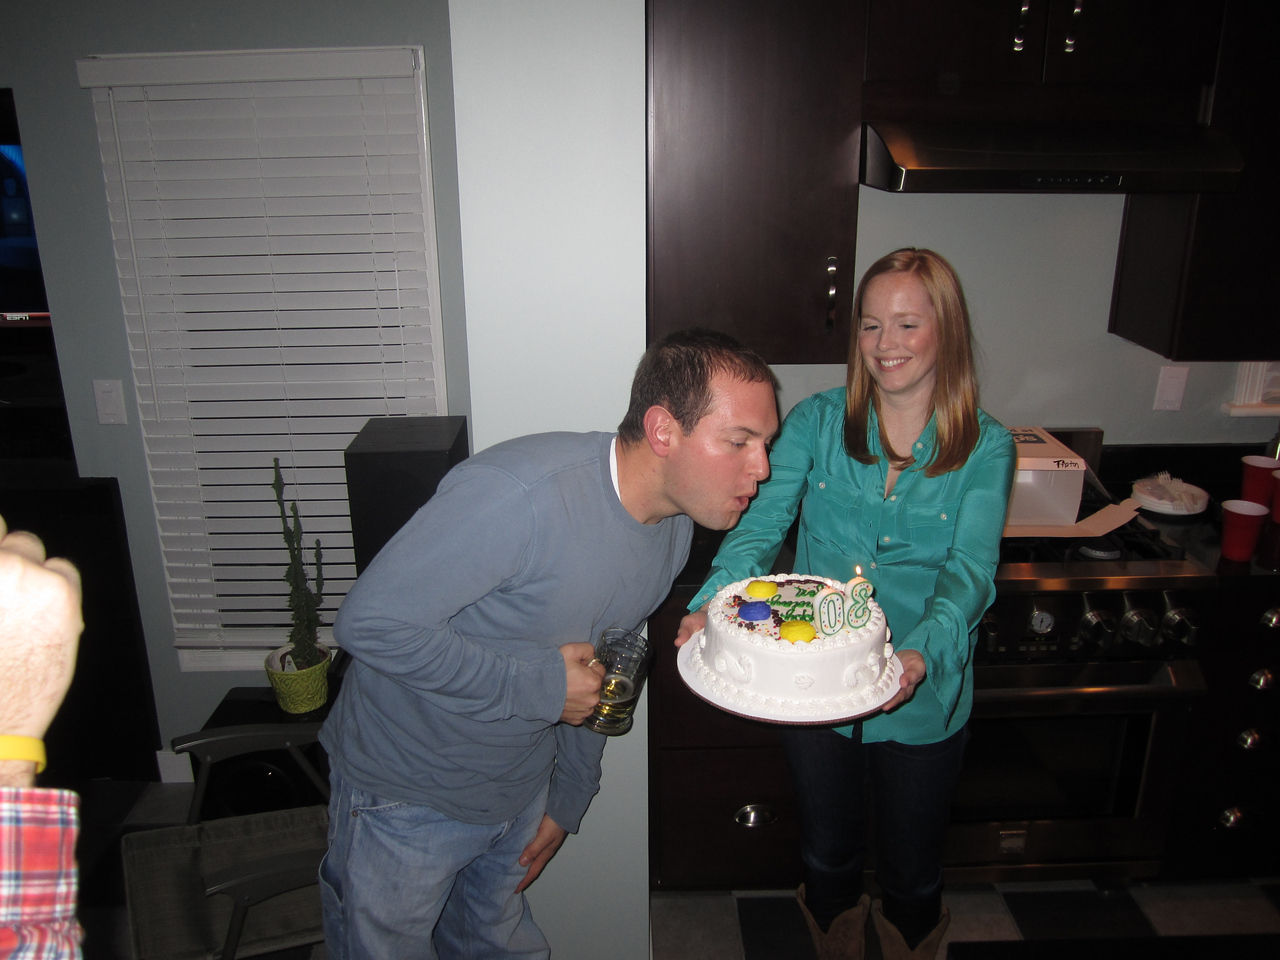 Jon blowing the candles out.